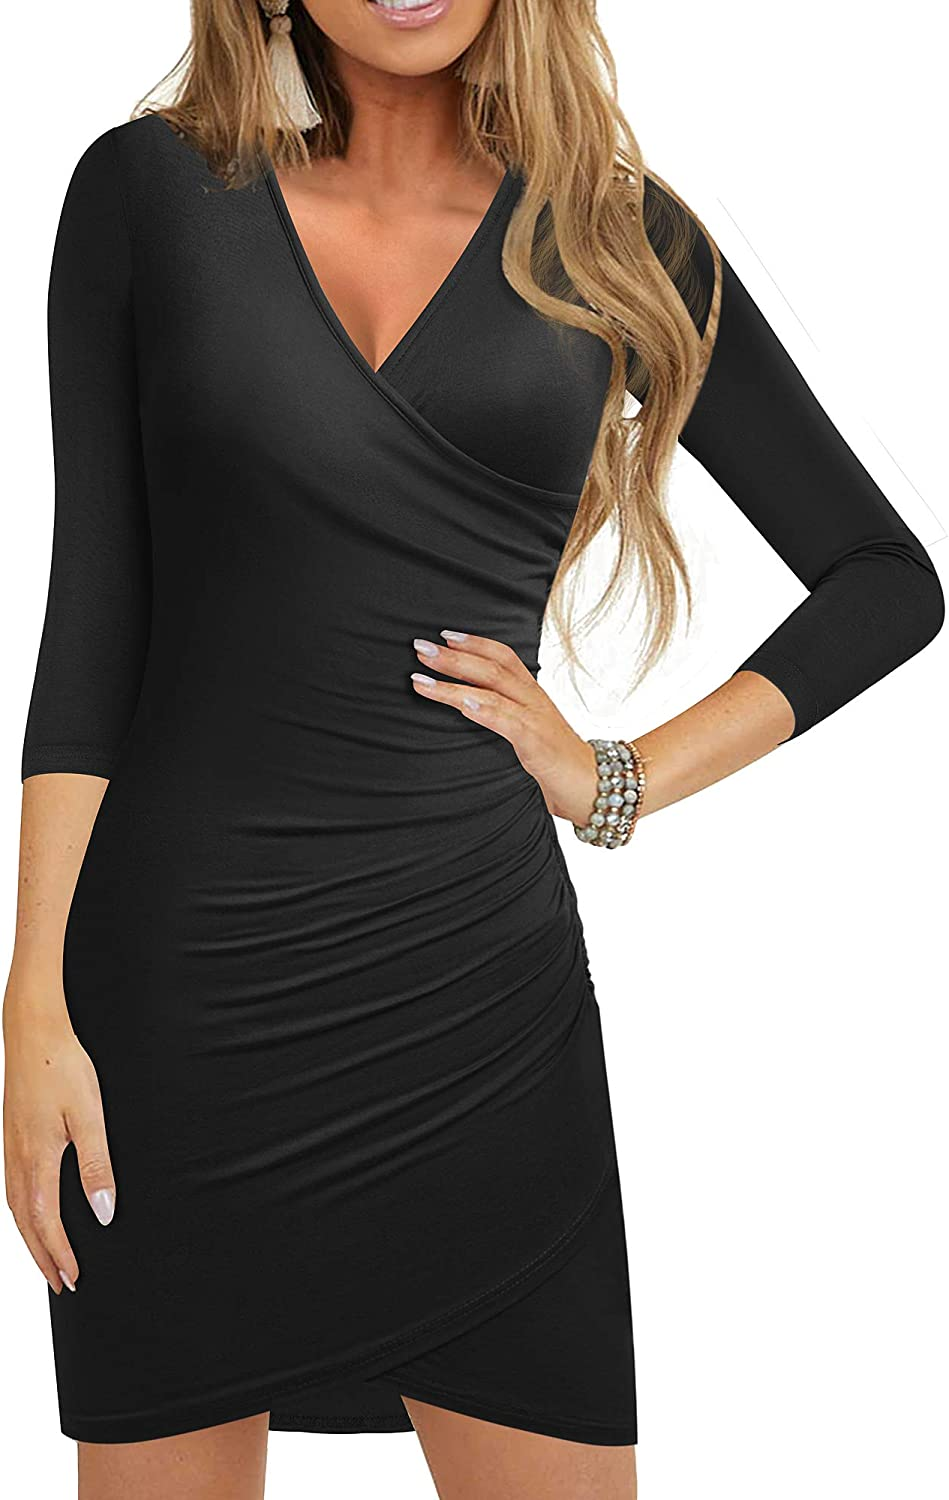 HOMEYEE Women's Casual V Neck Ruched Faux Wrap Bodycon Party Dress B544